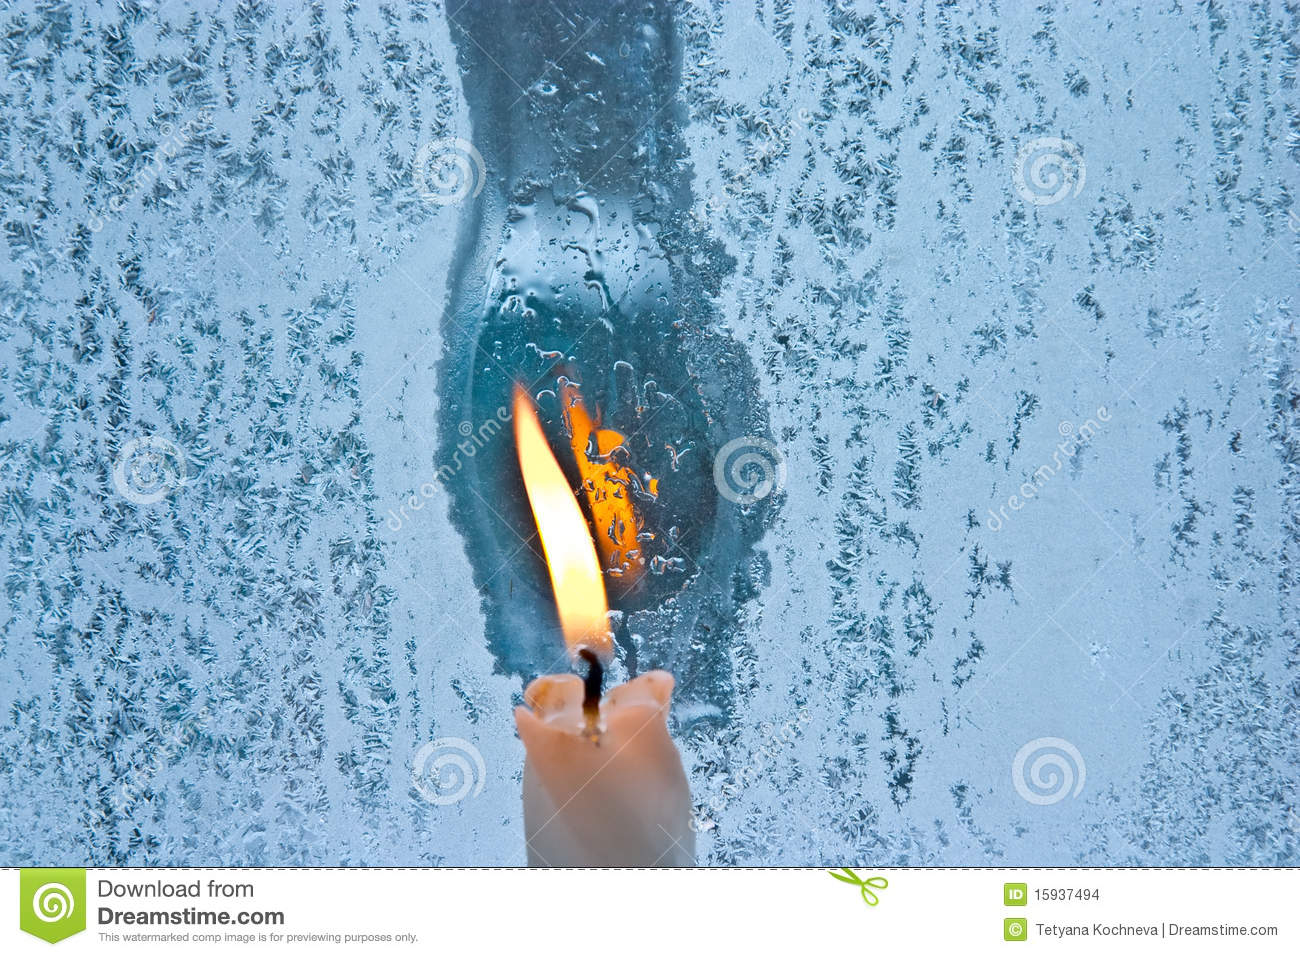 Frostwork on a window glass and candle